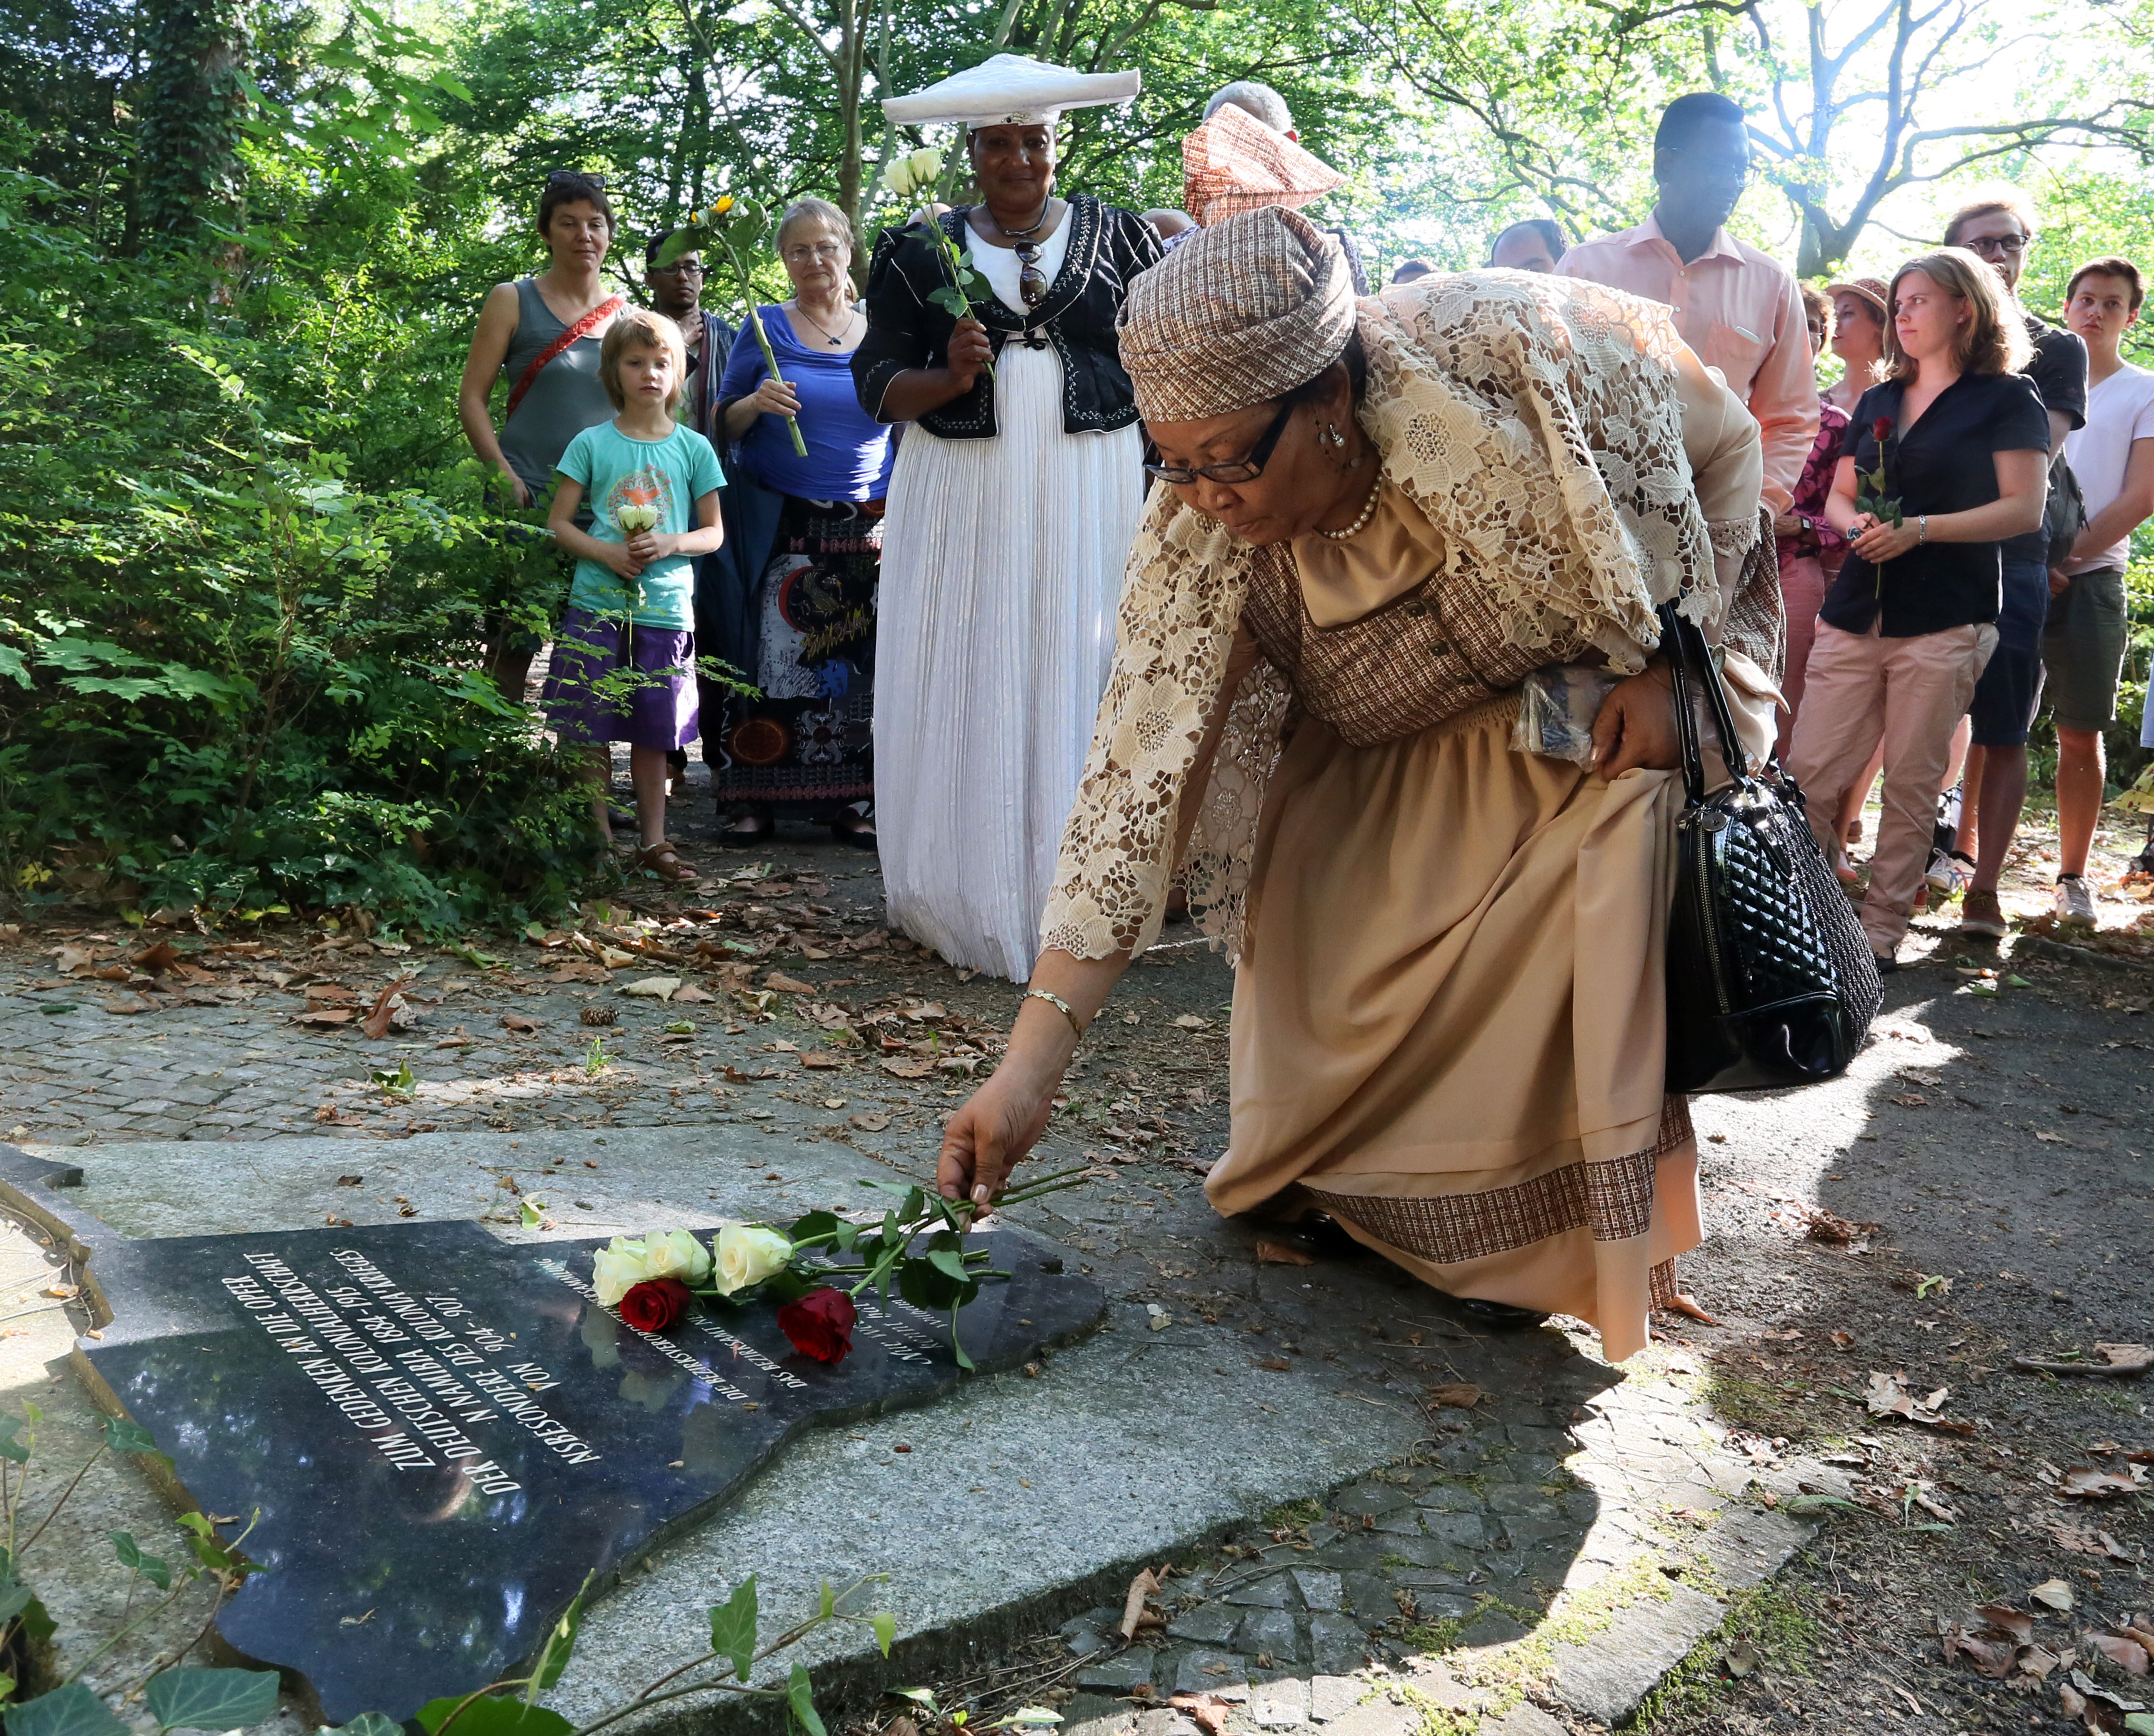 Commemoration of victims of German colonial rule